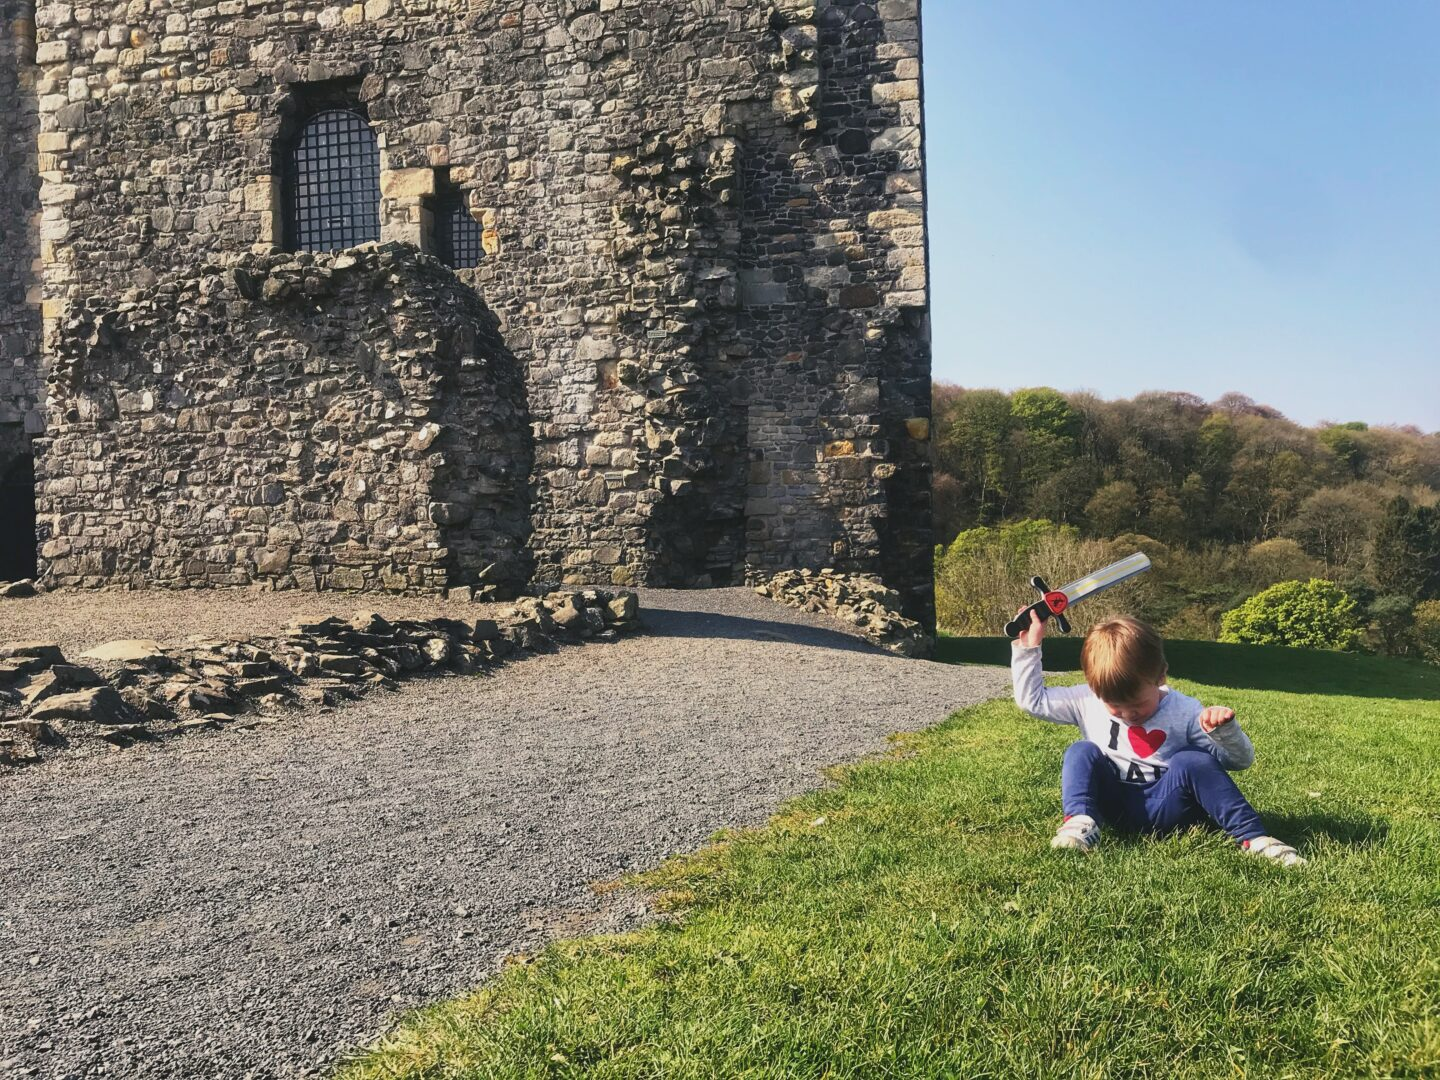 Dexter sat on grass outside Dundonald castle holding a plastic sword in the air